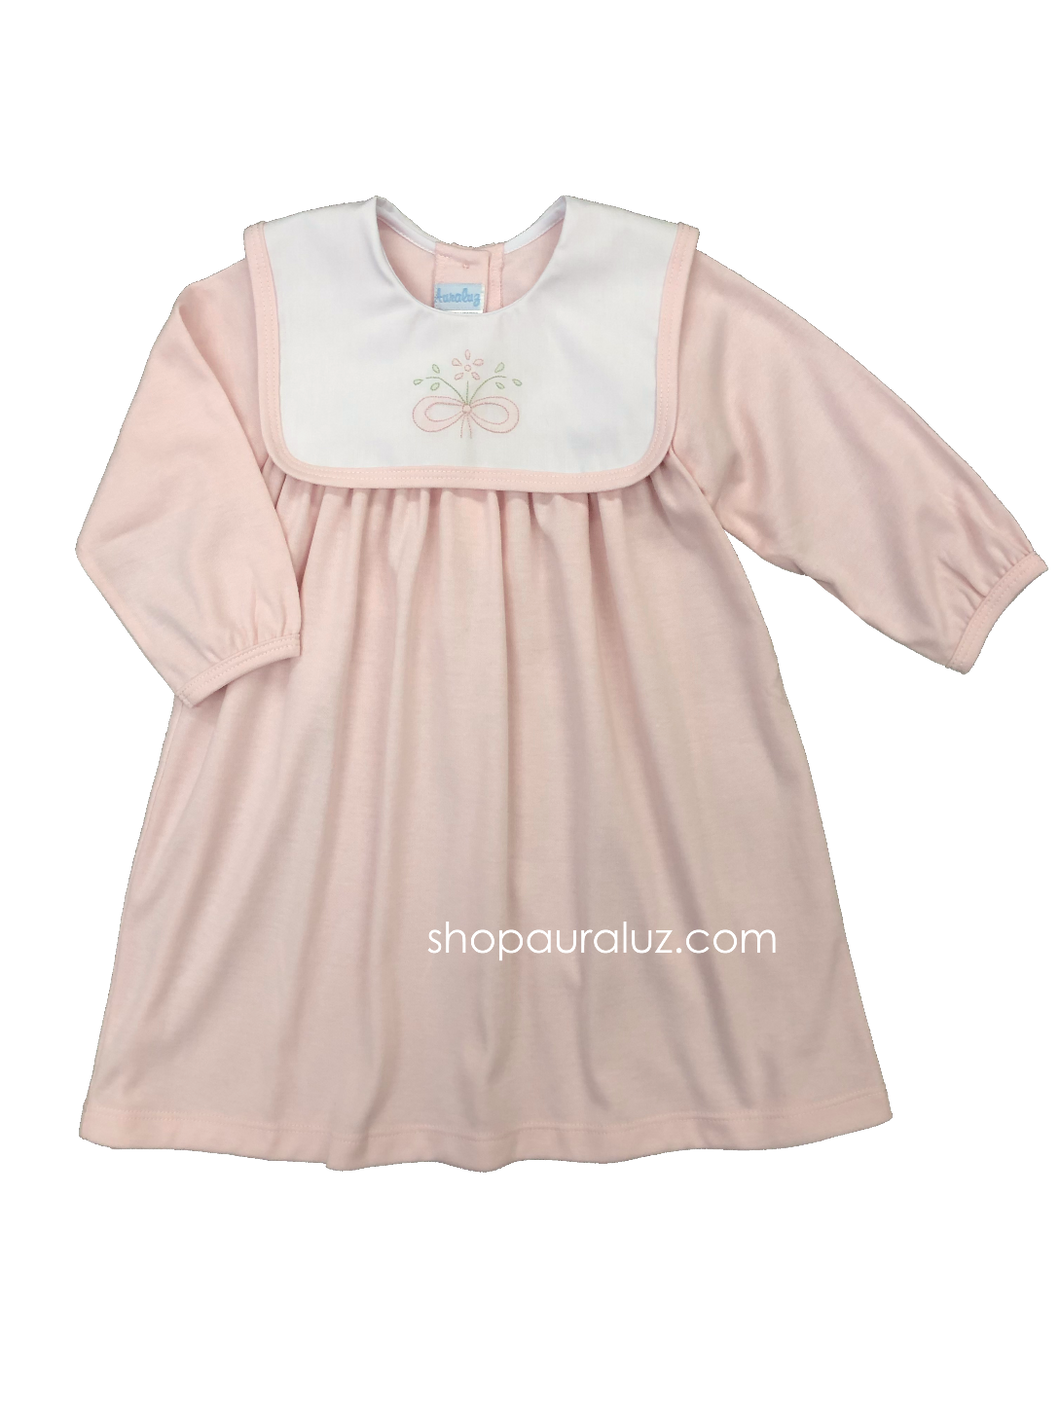 Auraluz Knit Dress...Pink with white square collar and embroidered bow